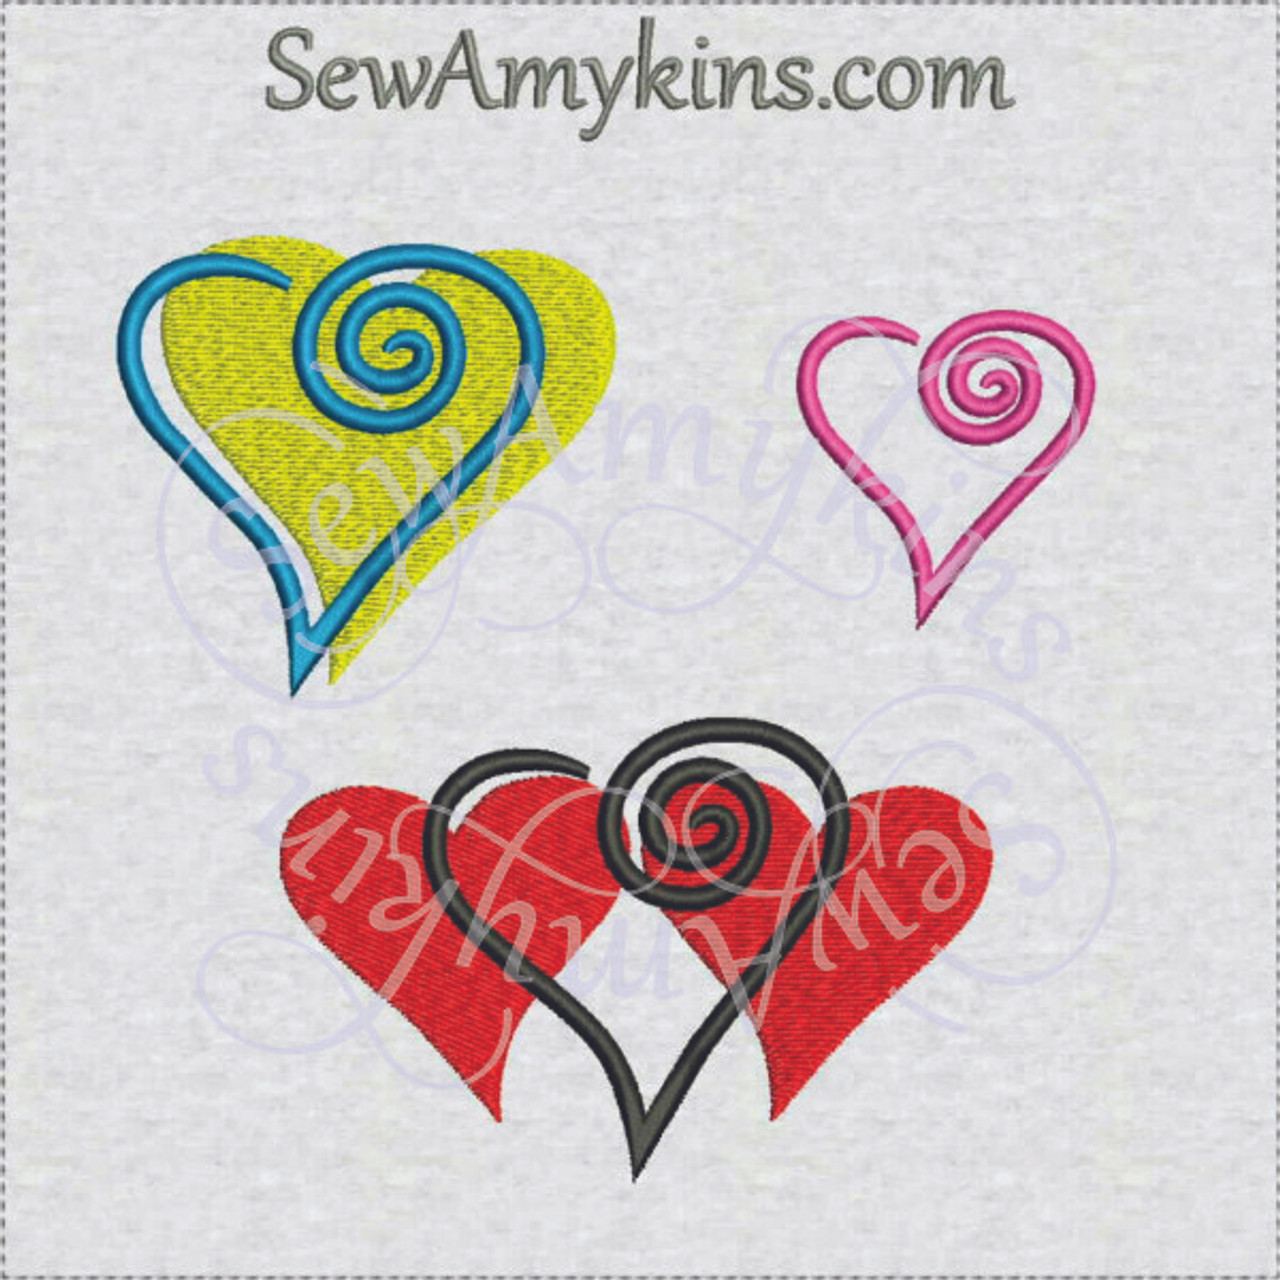 EMBROIDERY MACHINE DESIGNS ON A CD AND VALENTINES 3 IN 1 LOVE HEARTS,WEDDING